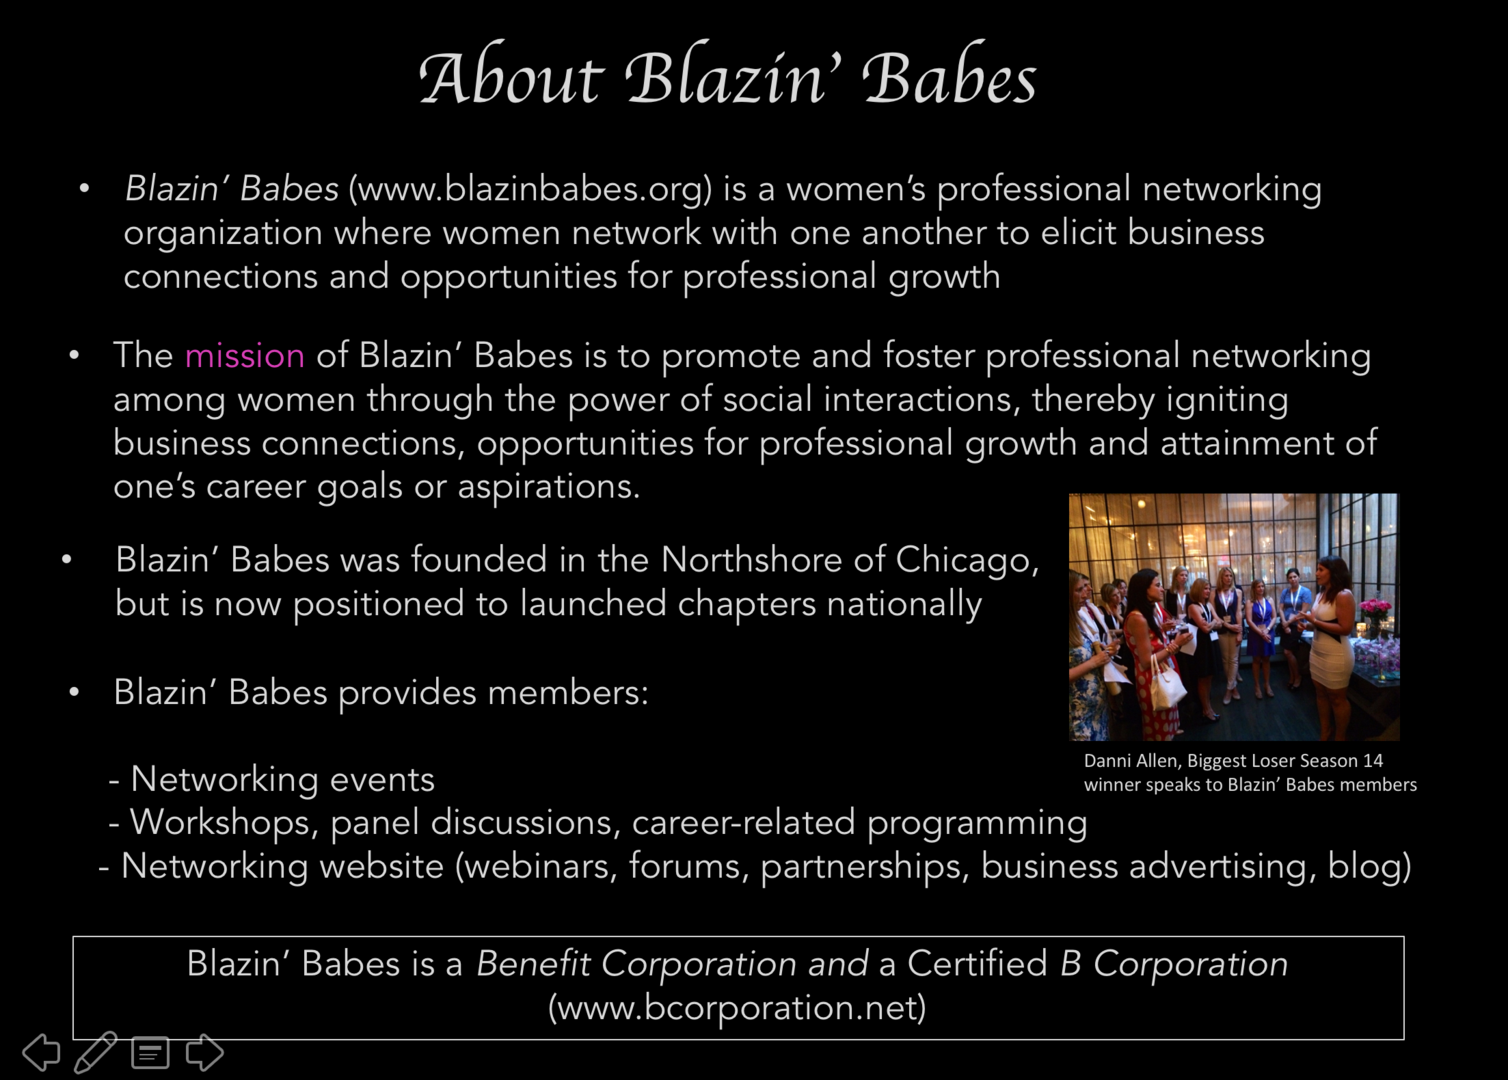 about us we provide workshops panel discussions networking events and other programming based on a social platform that encourages women to explore career